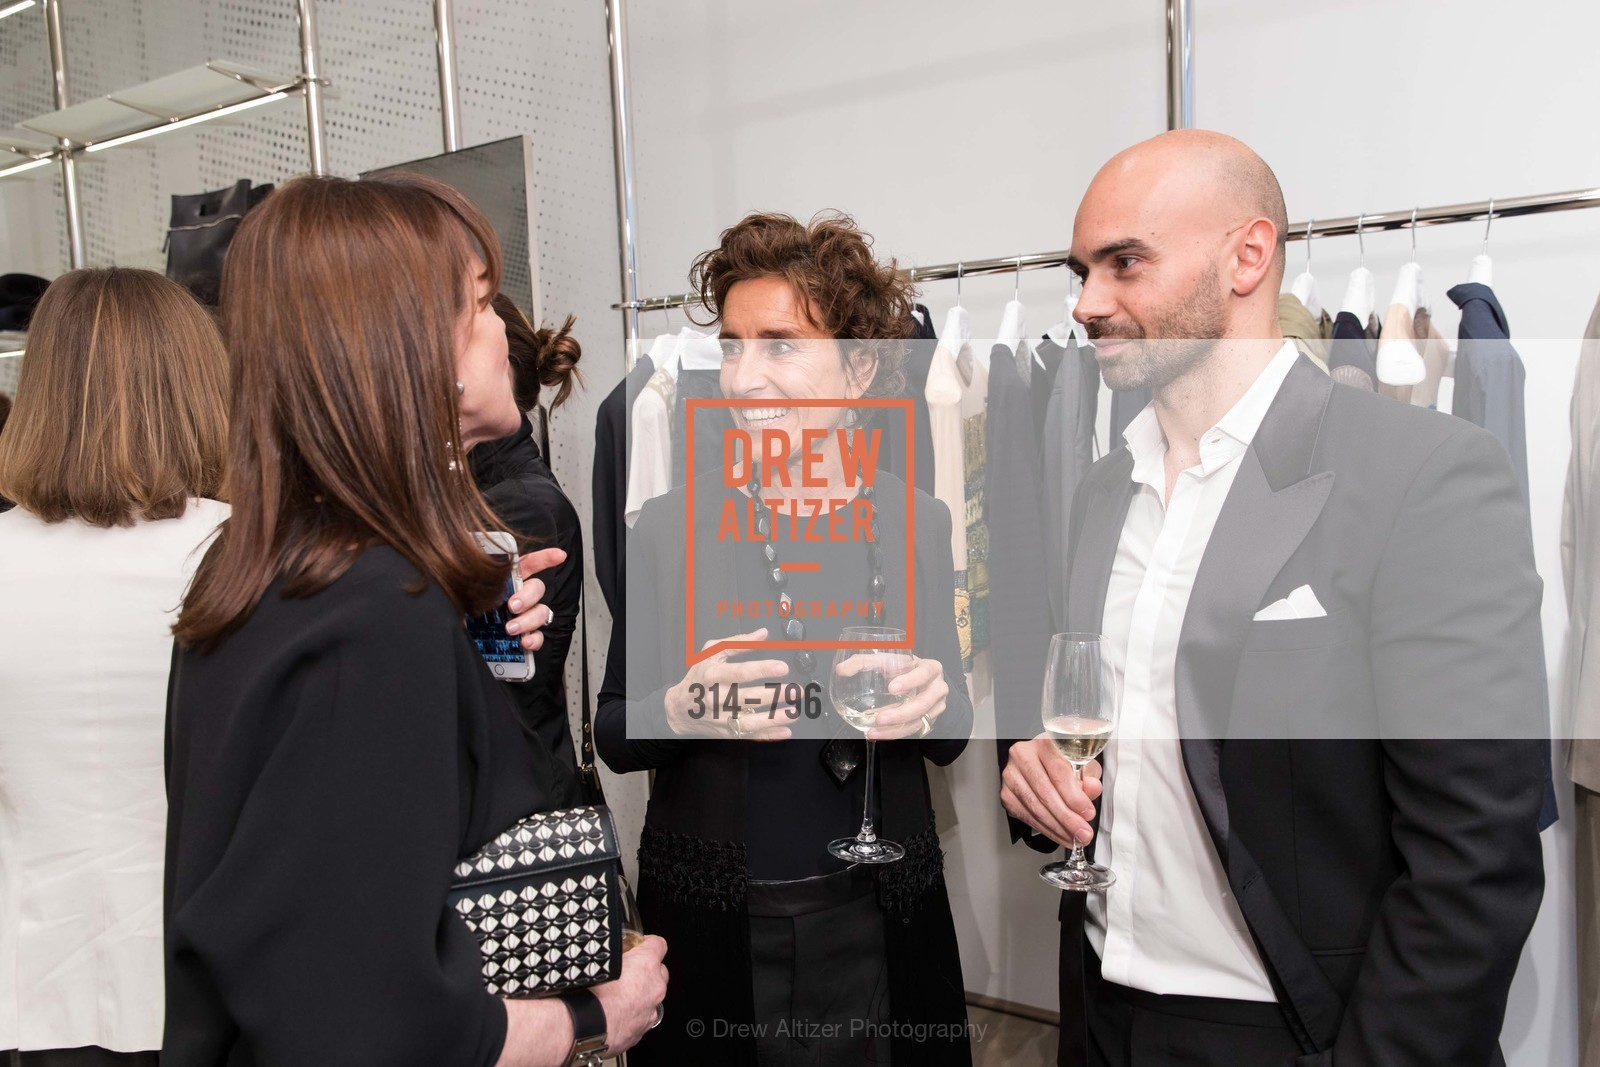 Allison Speer, Monica Voltolina, Matteo Comunalazzi, MAISON MARGIELA San Francisco Boutique Grand Opening Event, US, April 24th, 2015,Drew Altizer, Drew Altizer Photography, full-service agency, private events, San Francisco photographer, photographer california